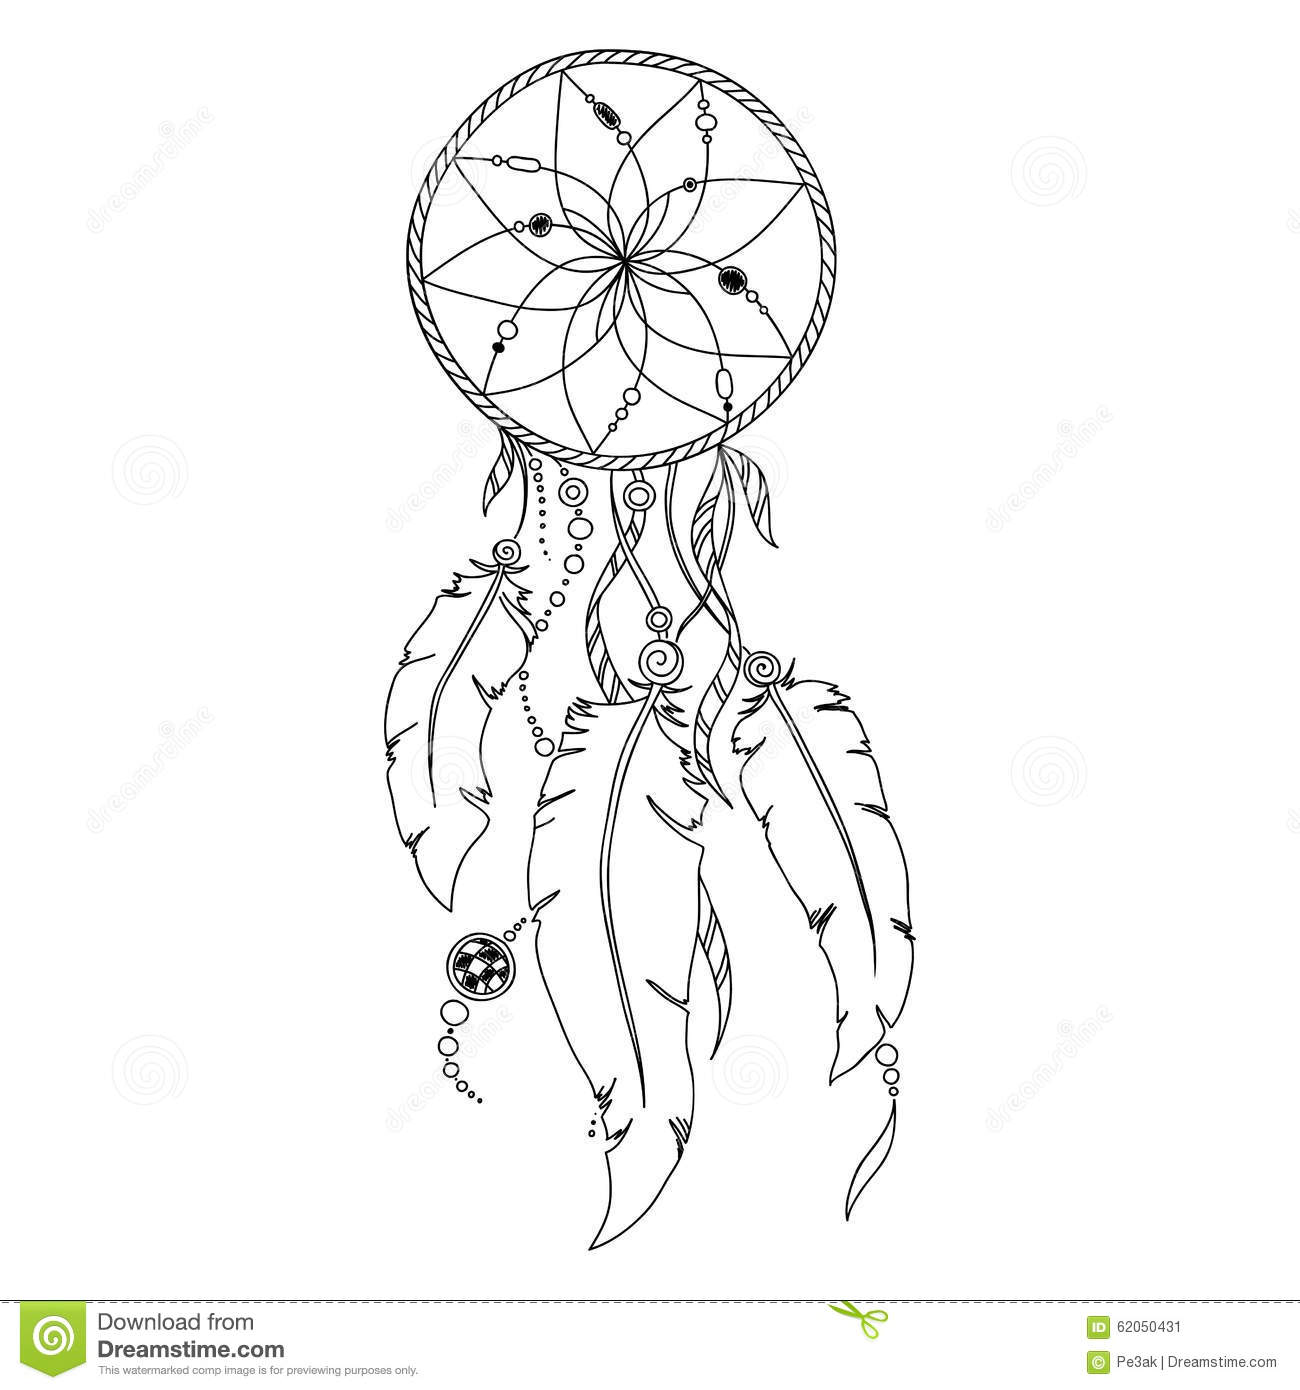 Boho dream catcher coloring page coloring pages for Dreamcatcher tattoo template